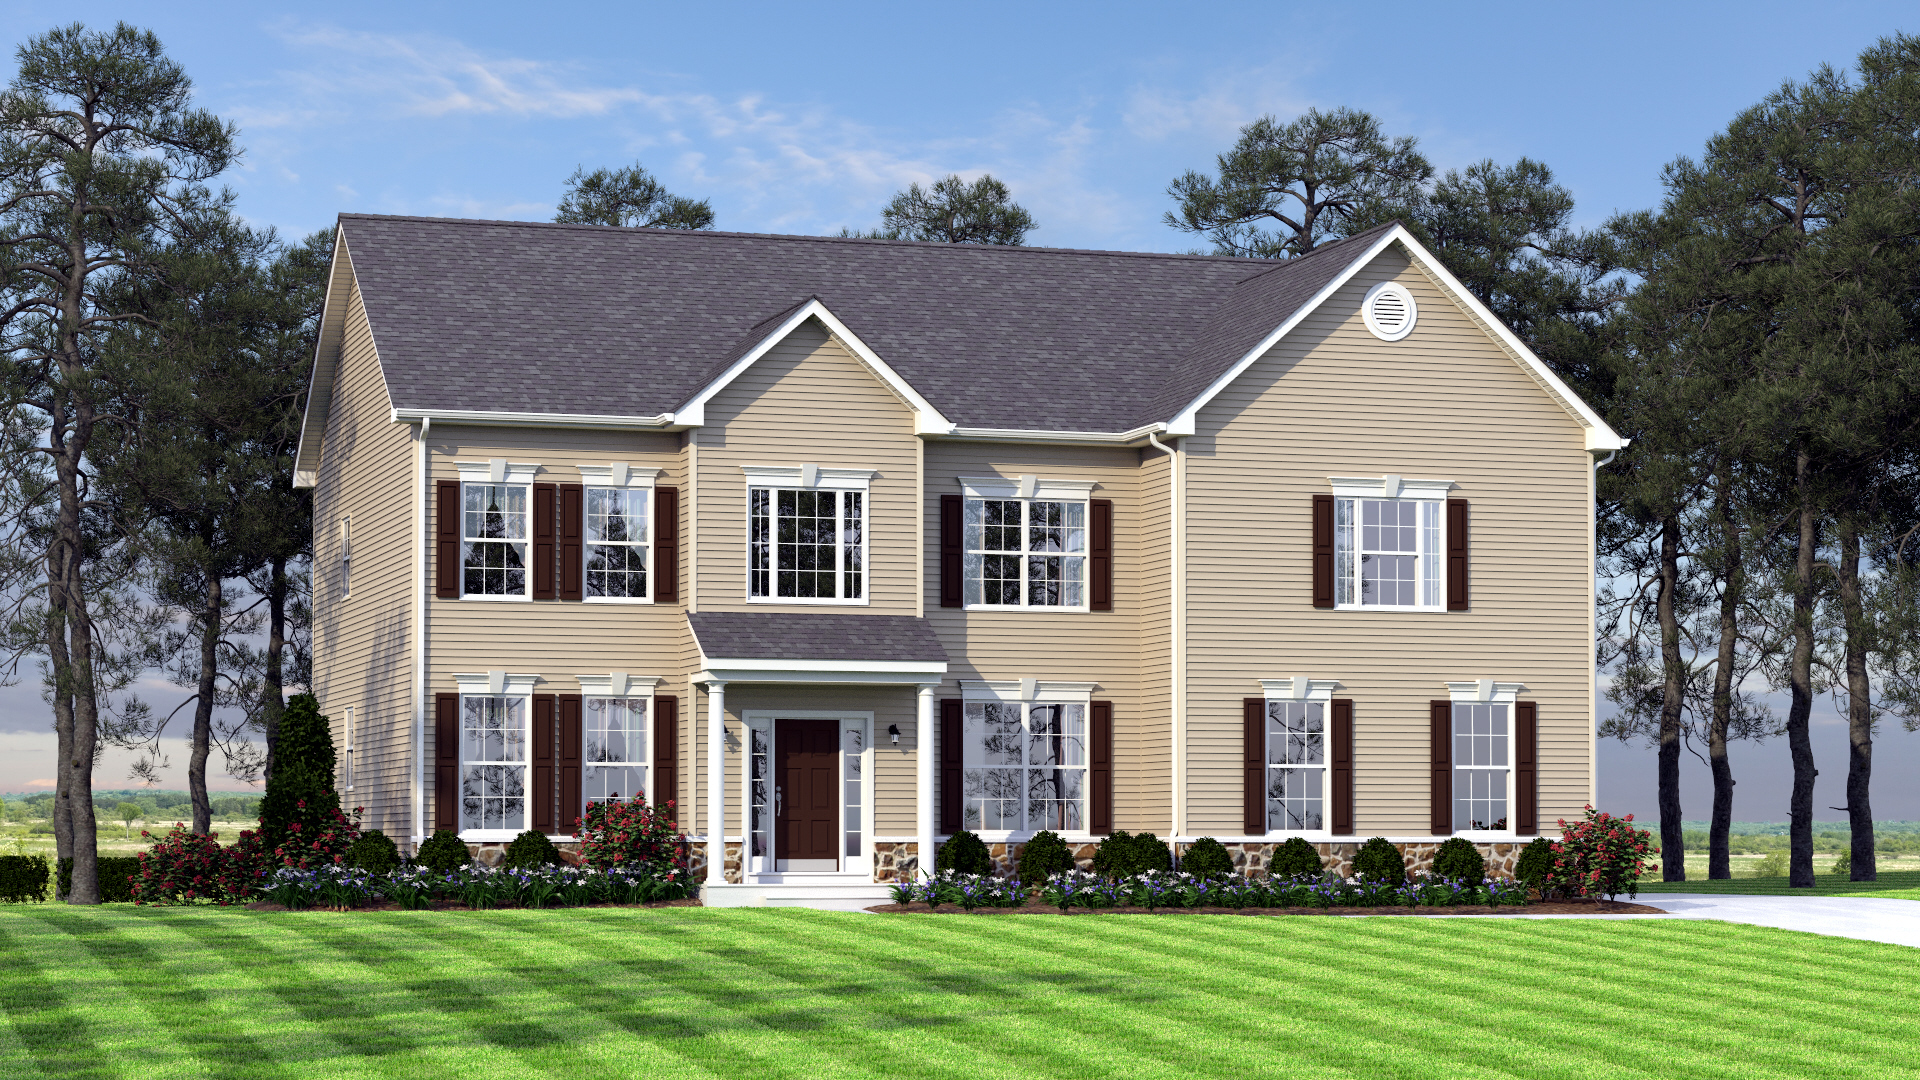 The Charleston Grand   3,000 sf / 4 br / 2.5 ba / 2 car garage  Starting at $328,990